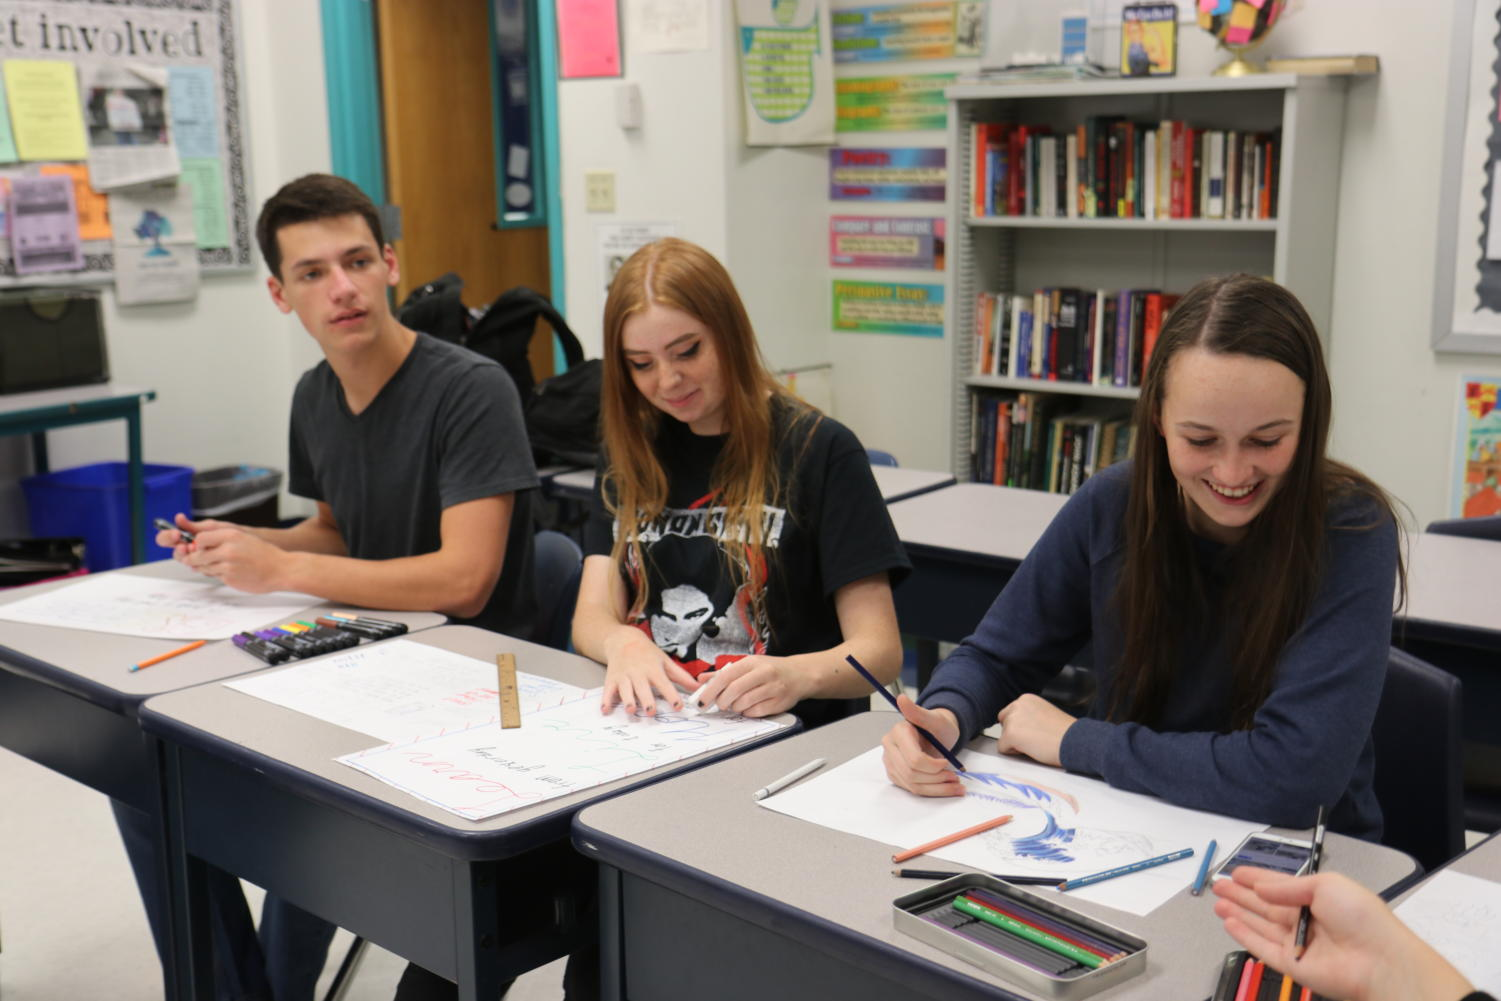 """M4MH members left to right are senior Zach Streicher, junior Laura Dorris, and senior Annie Getts. Club members took additional time outside of Flex meetings to design inspirational posters to be displayed in bathroom stalls this month. The students spent time playing music, coloring their posters, and enjoying each other's company. """"So far our meetings have been very educational, and this is much more interactive for everyone,"""